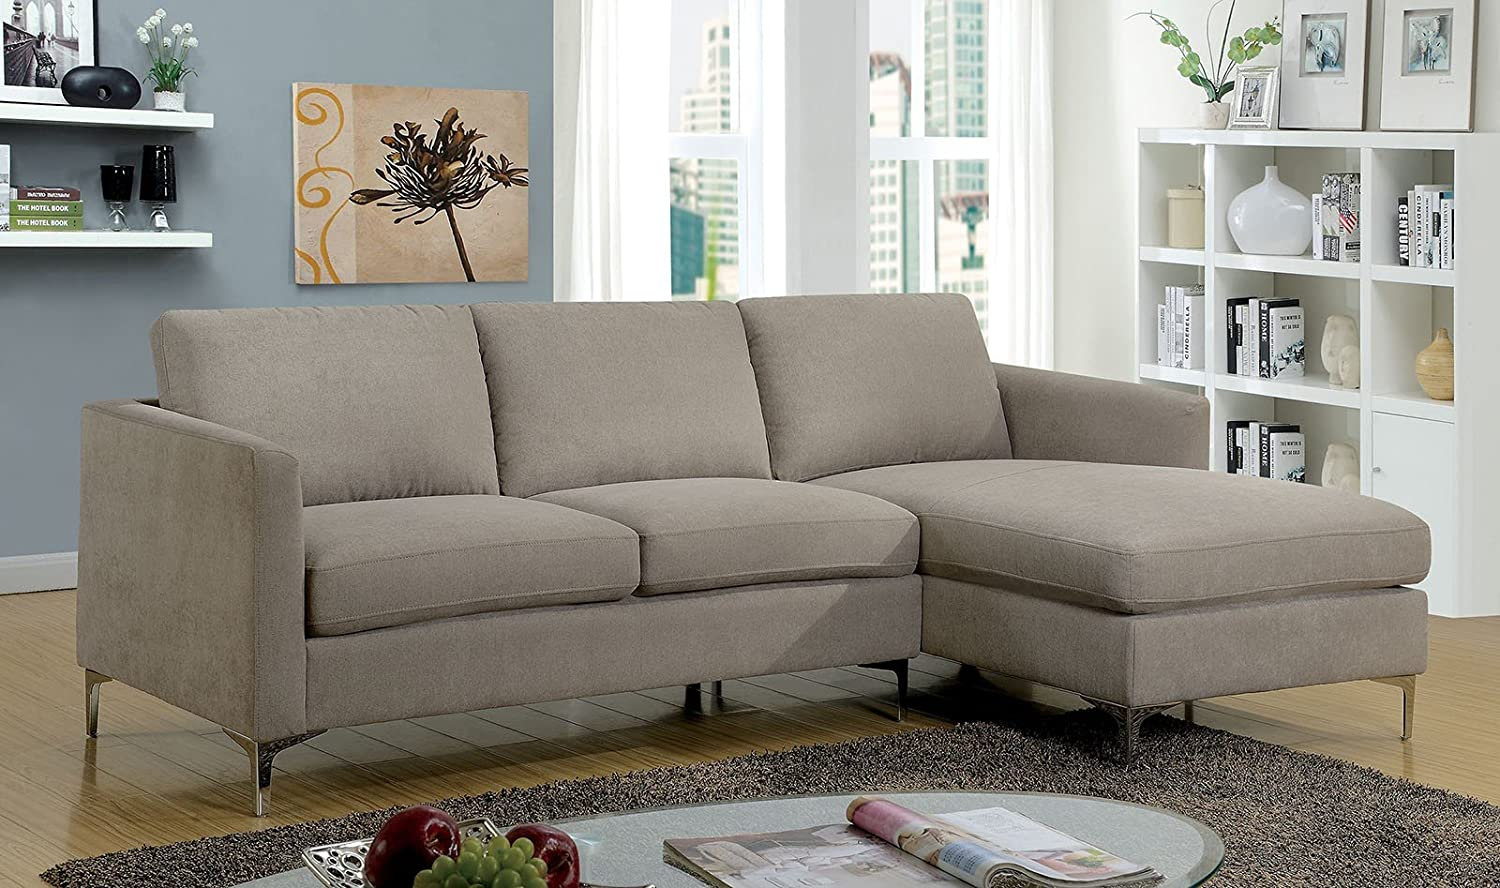 Amazon.com: Esofastore Living Room Classic Look Sectional ...